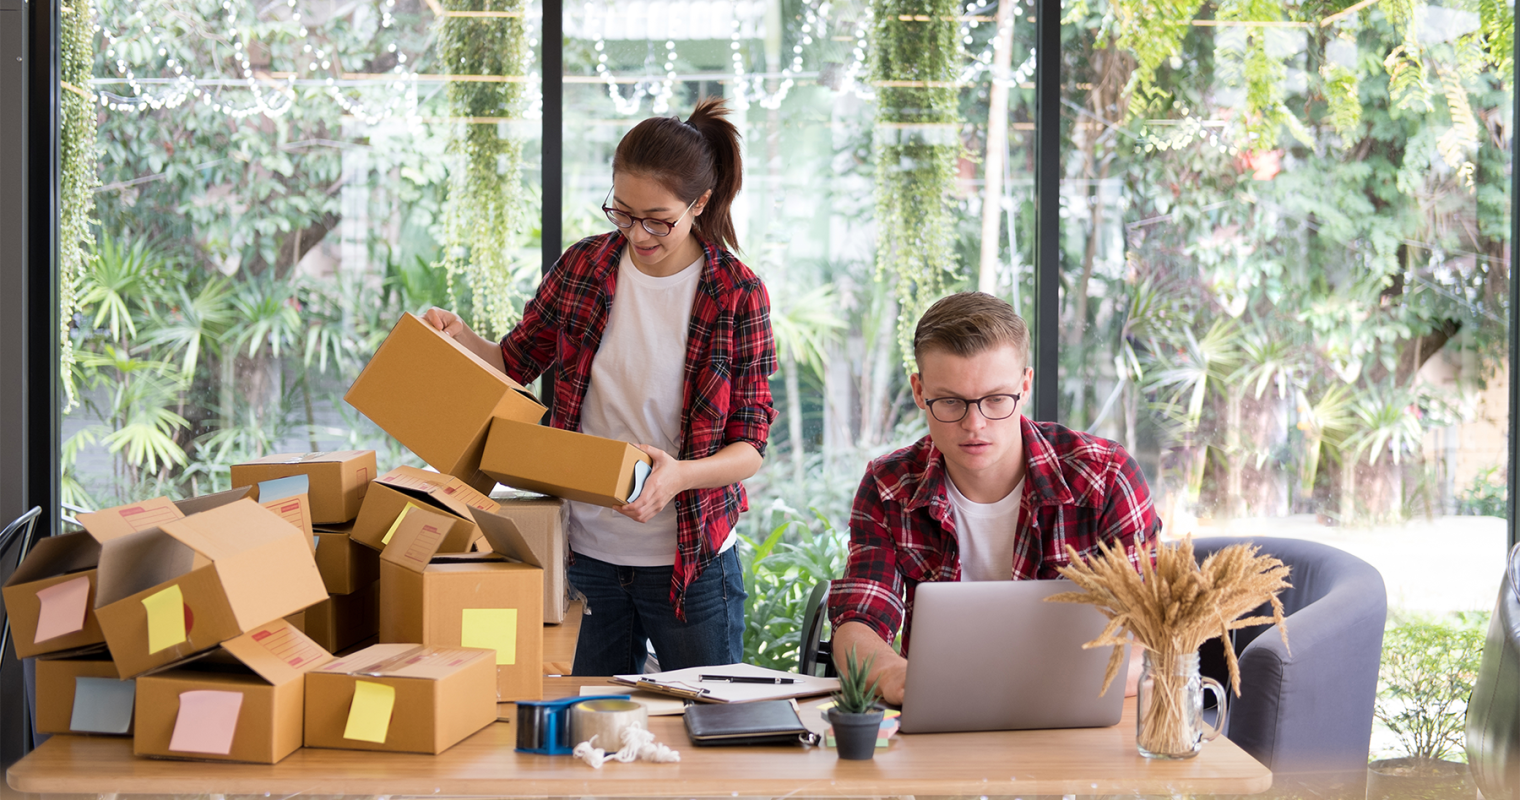 9 Common Small Business Challenges and How to Navigate Them